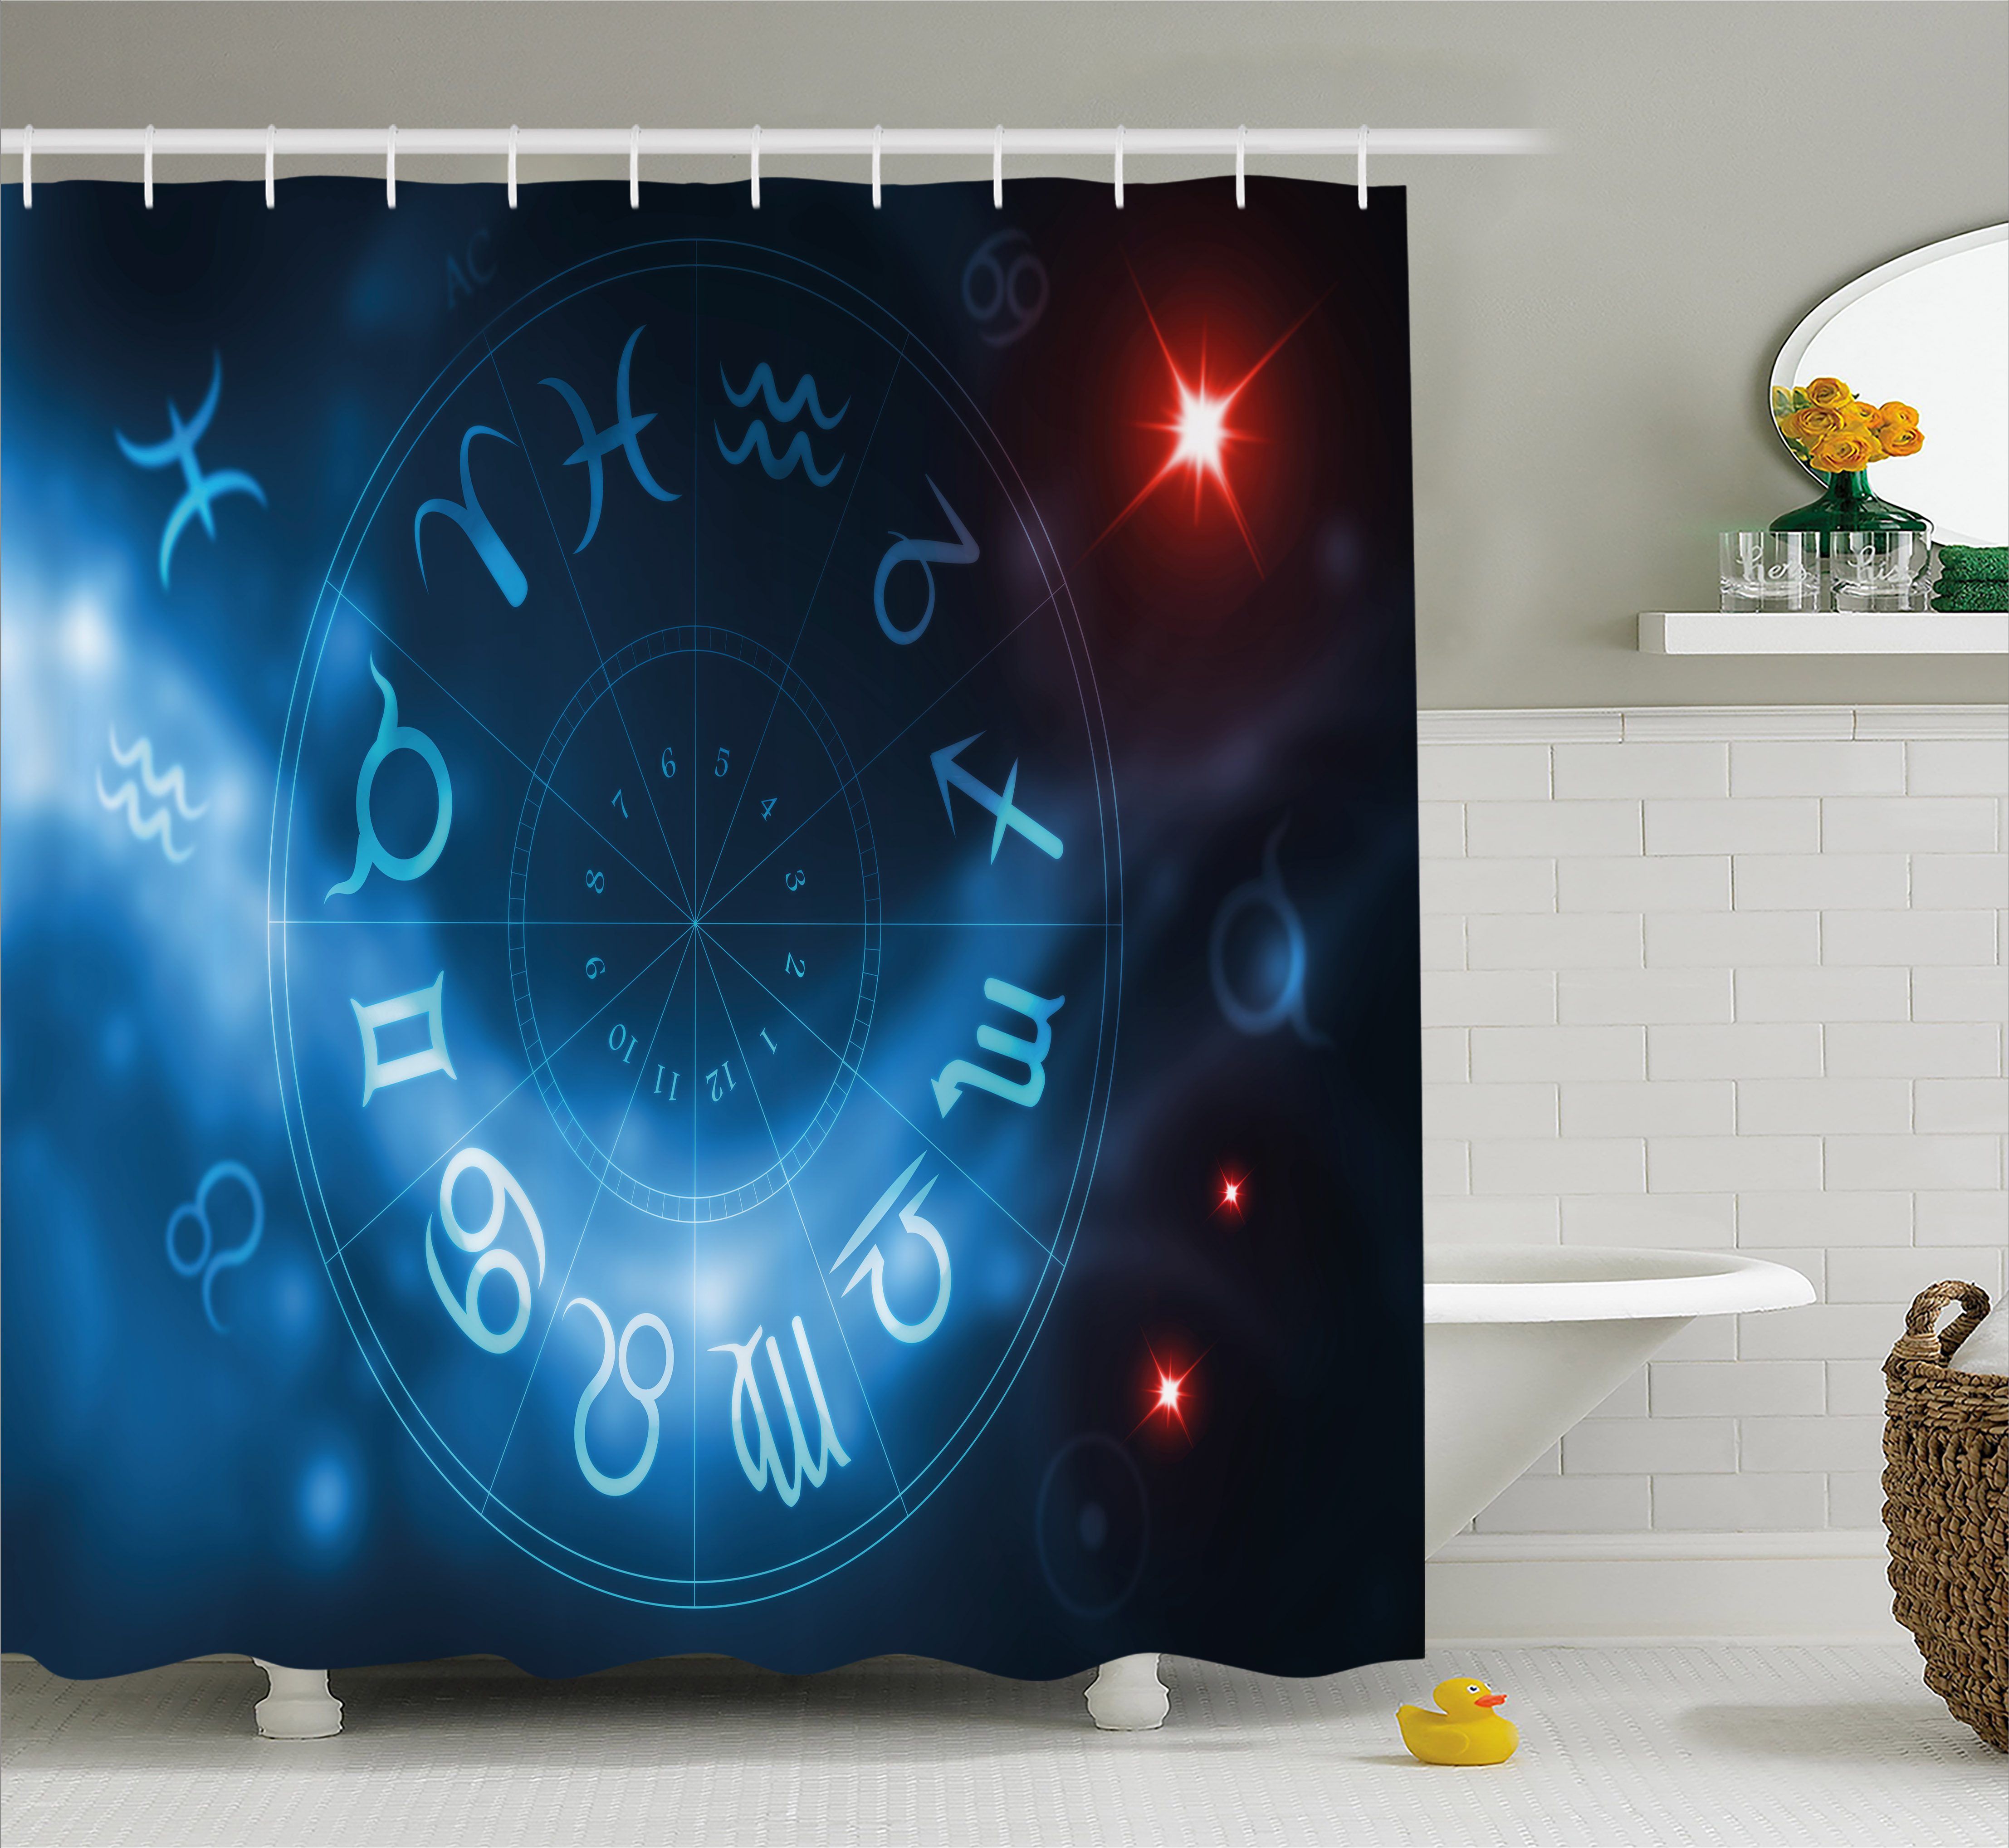 Astrology Shower Curtain, Horoscope Circle Signs Virgo Scorpio Sagittarius with Abstract Backdrop, Fabric Bathroom Set with Hooks, 69W X 84L Inches Extra Long, Blue White and Red, by Ambesonne